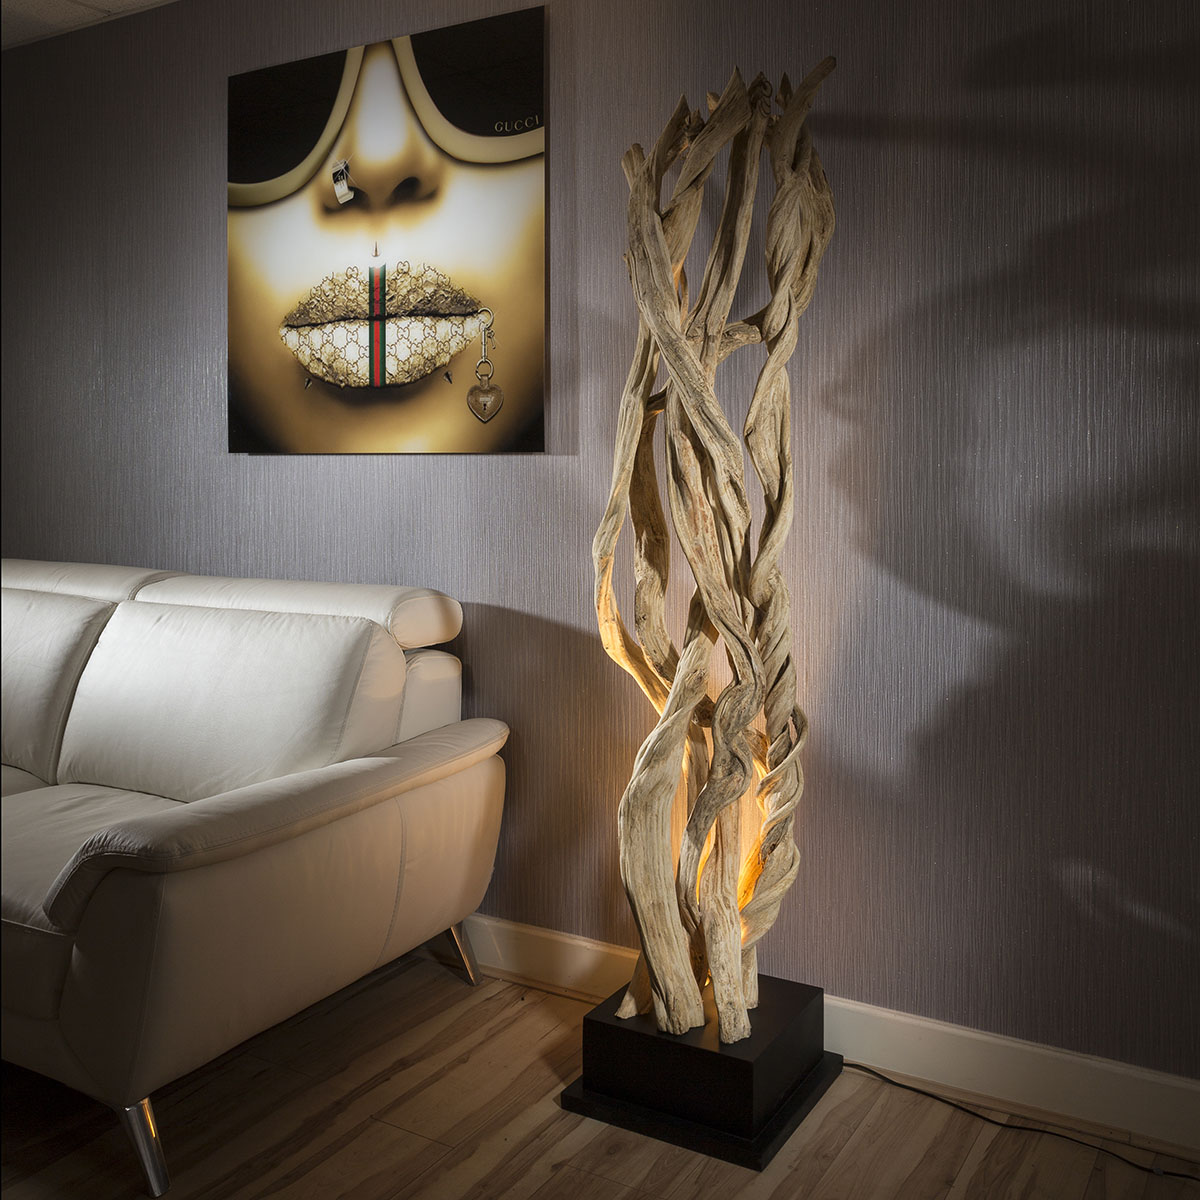 driftwood lamp decor lighting in for cool enticing bases your and home ideas concept stylish floor